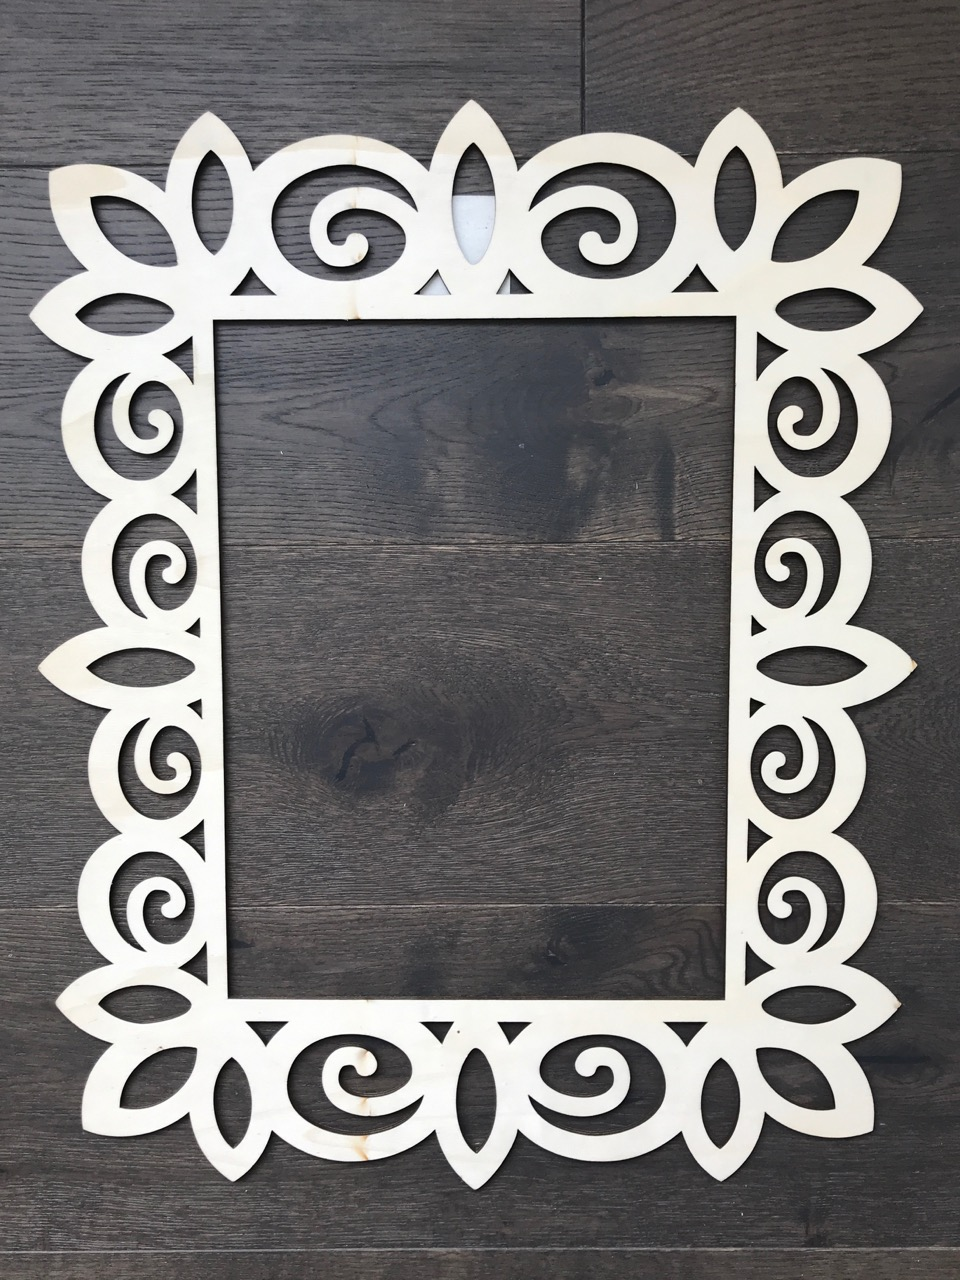 $10 - 10.75 inches by 13.75 inches middle insert - 2 available I love using these ones to frame around a letter, or an object. Price includes being painted or stained a colour to match your decor